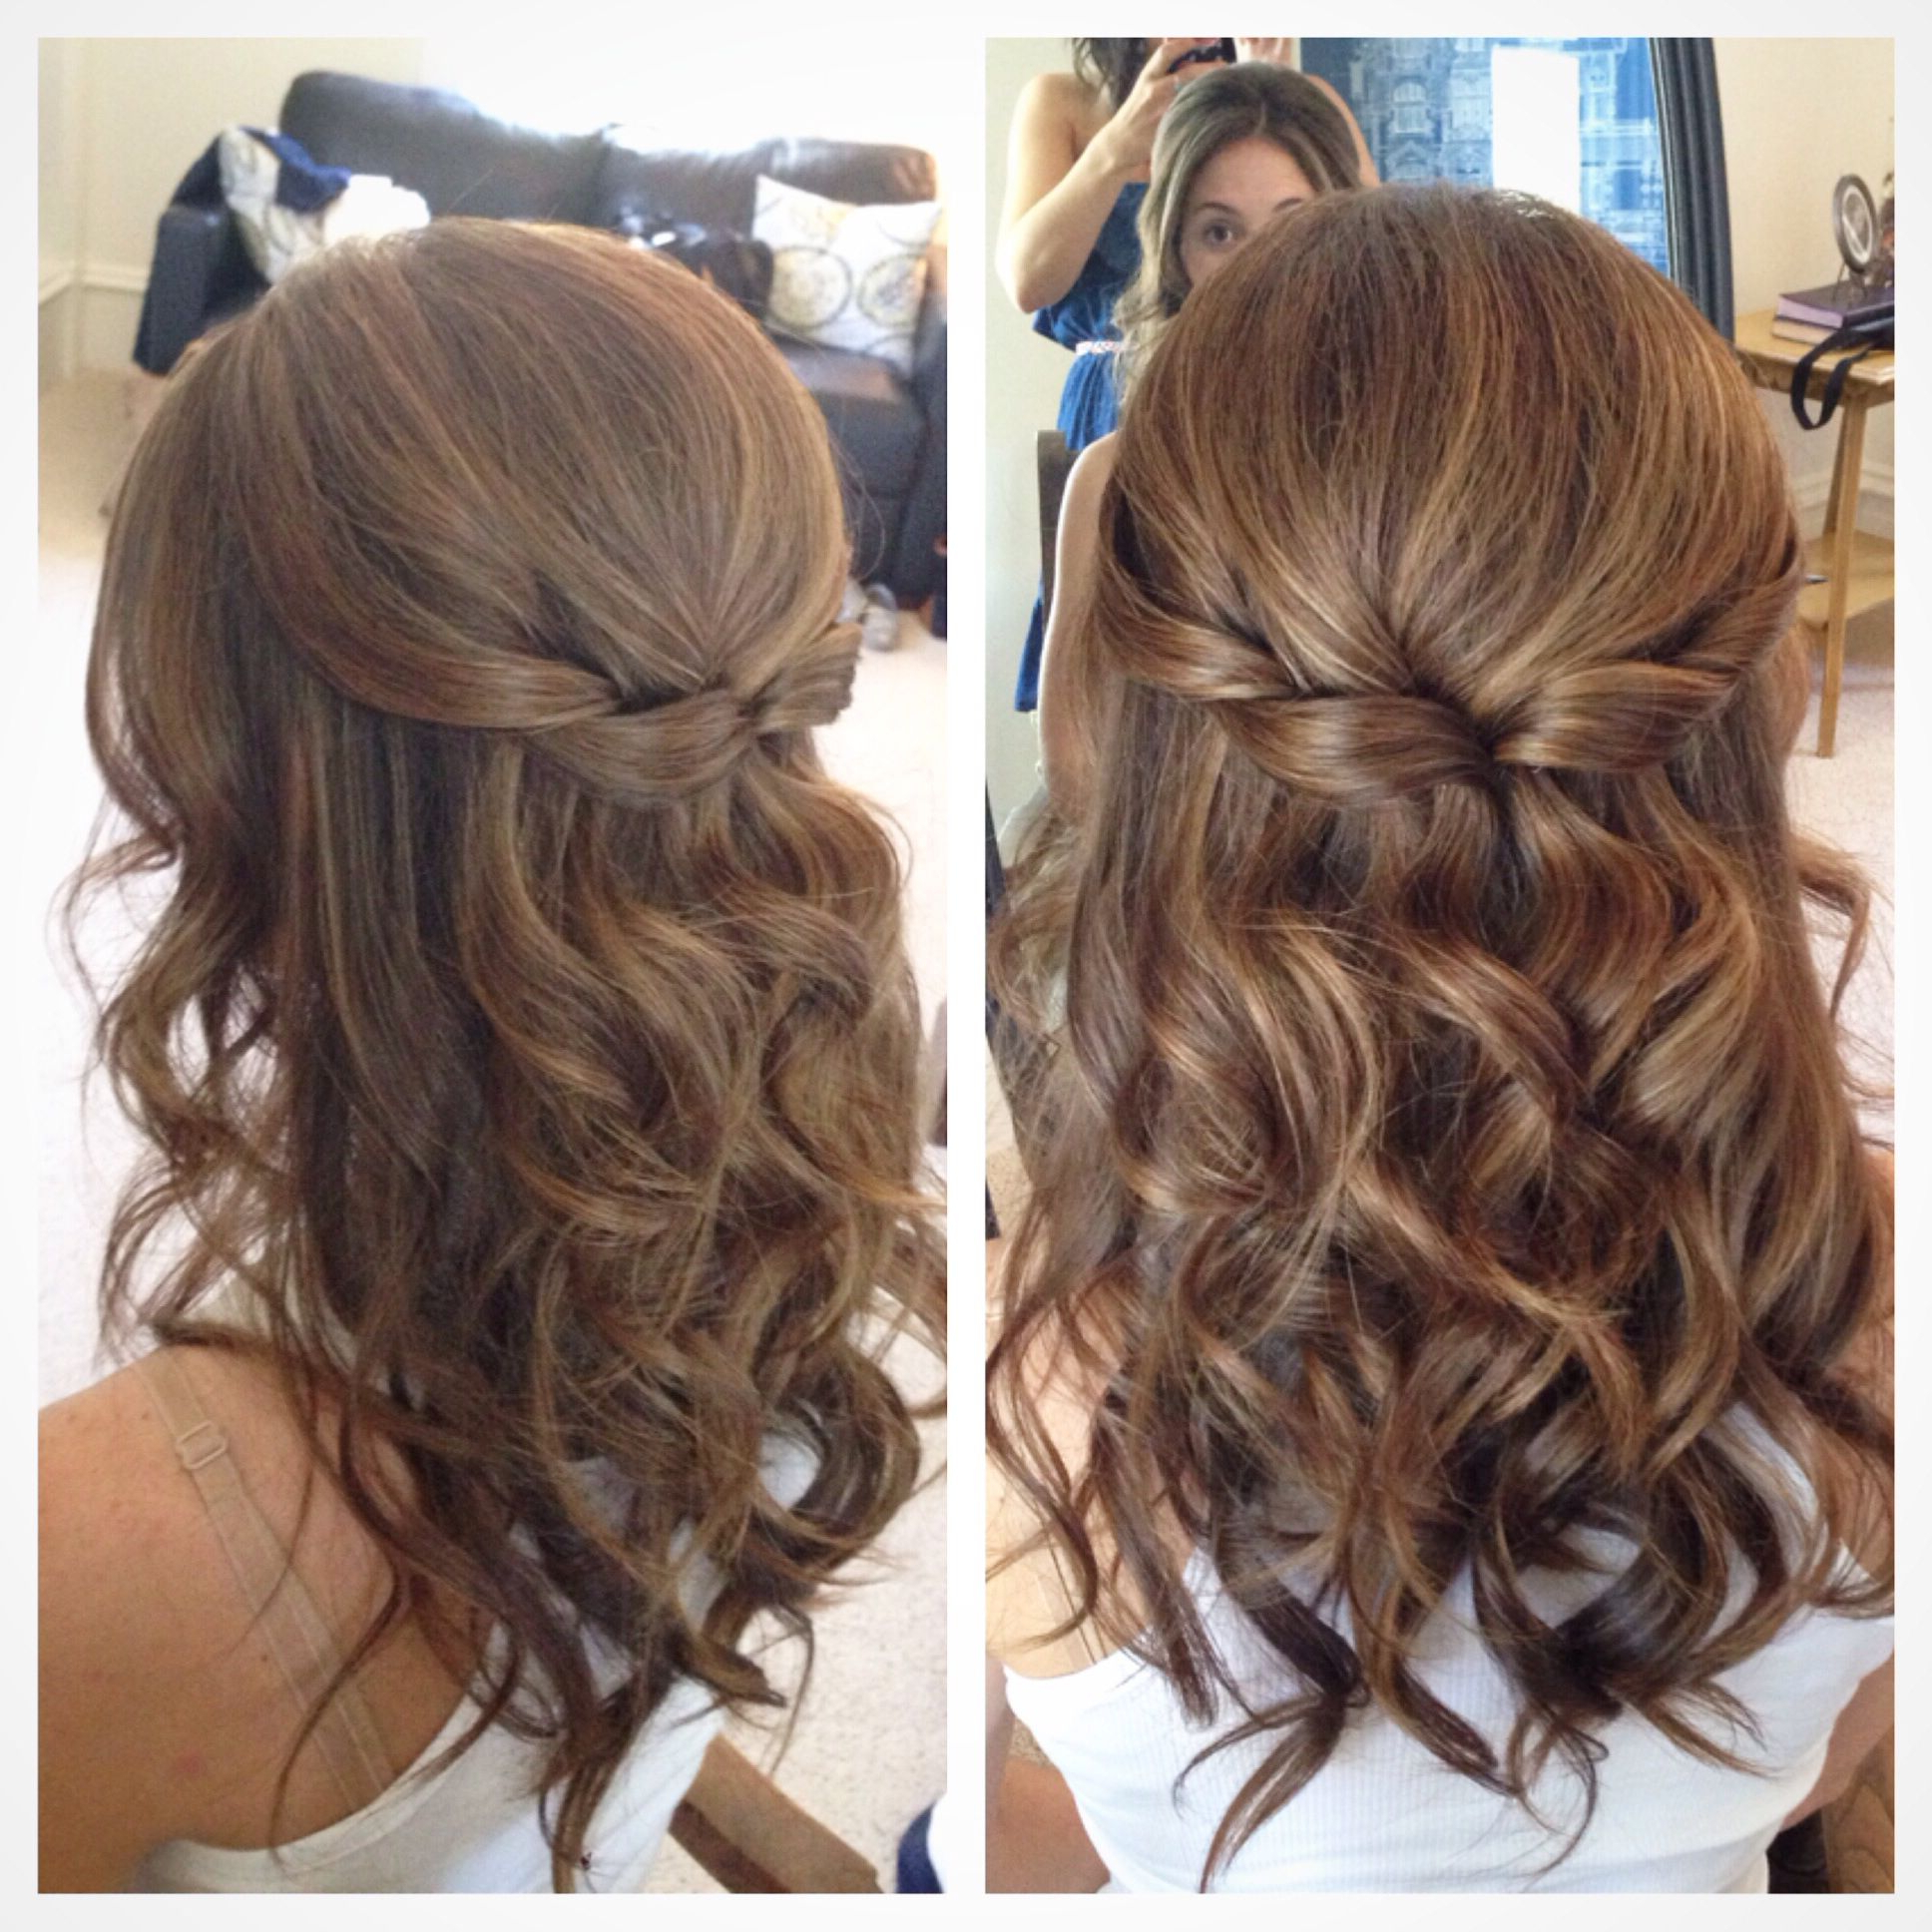 Prom Hair (View 13 of 20)